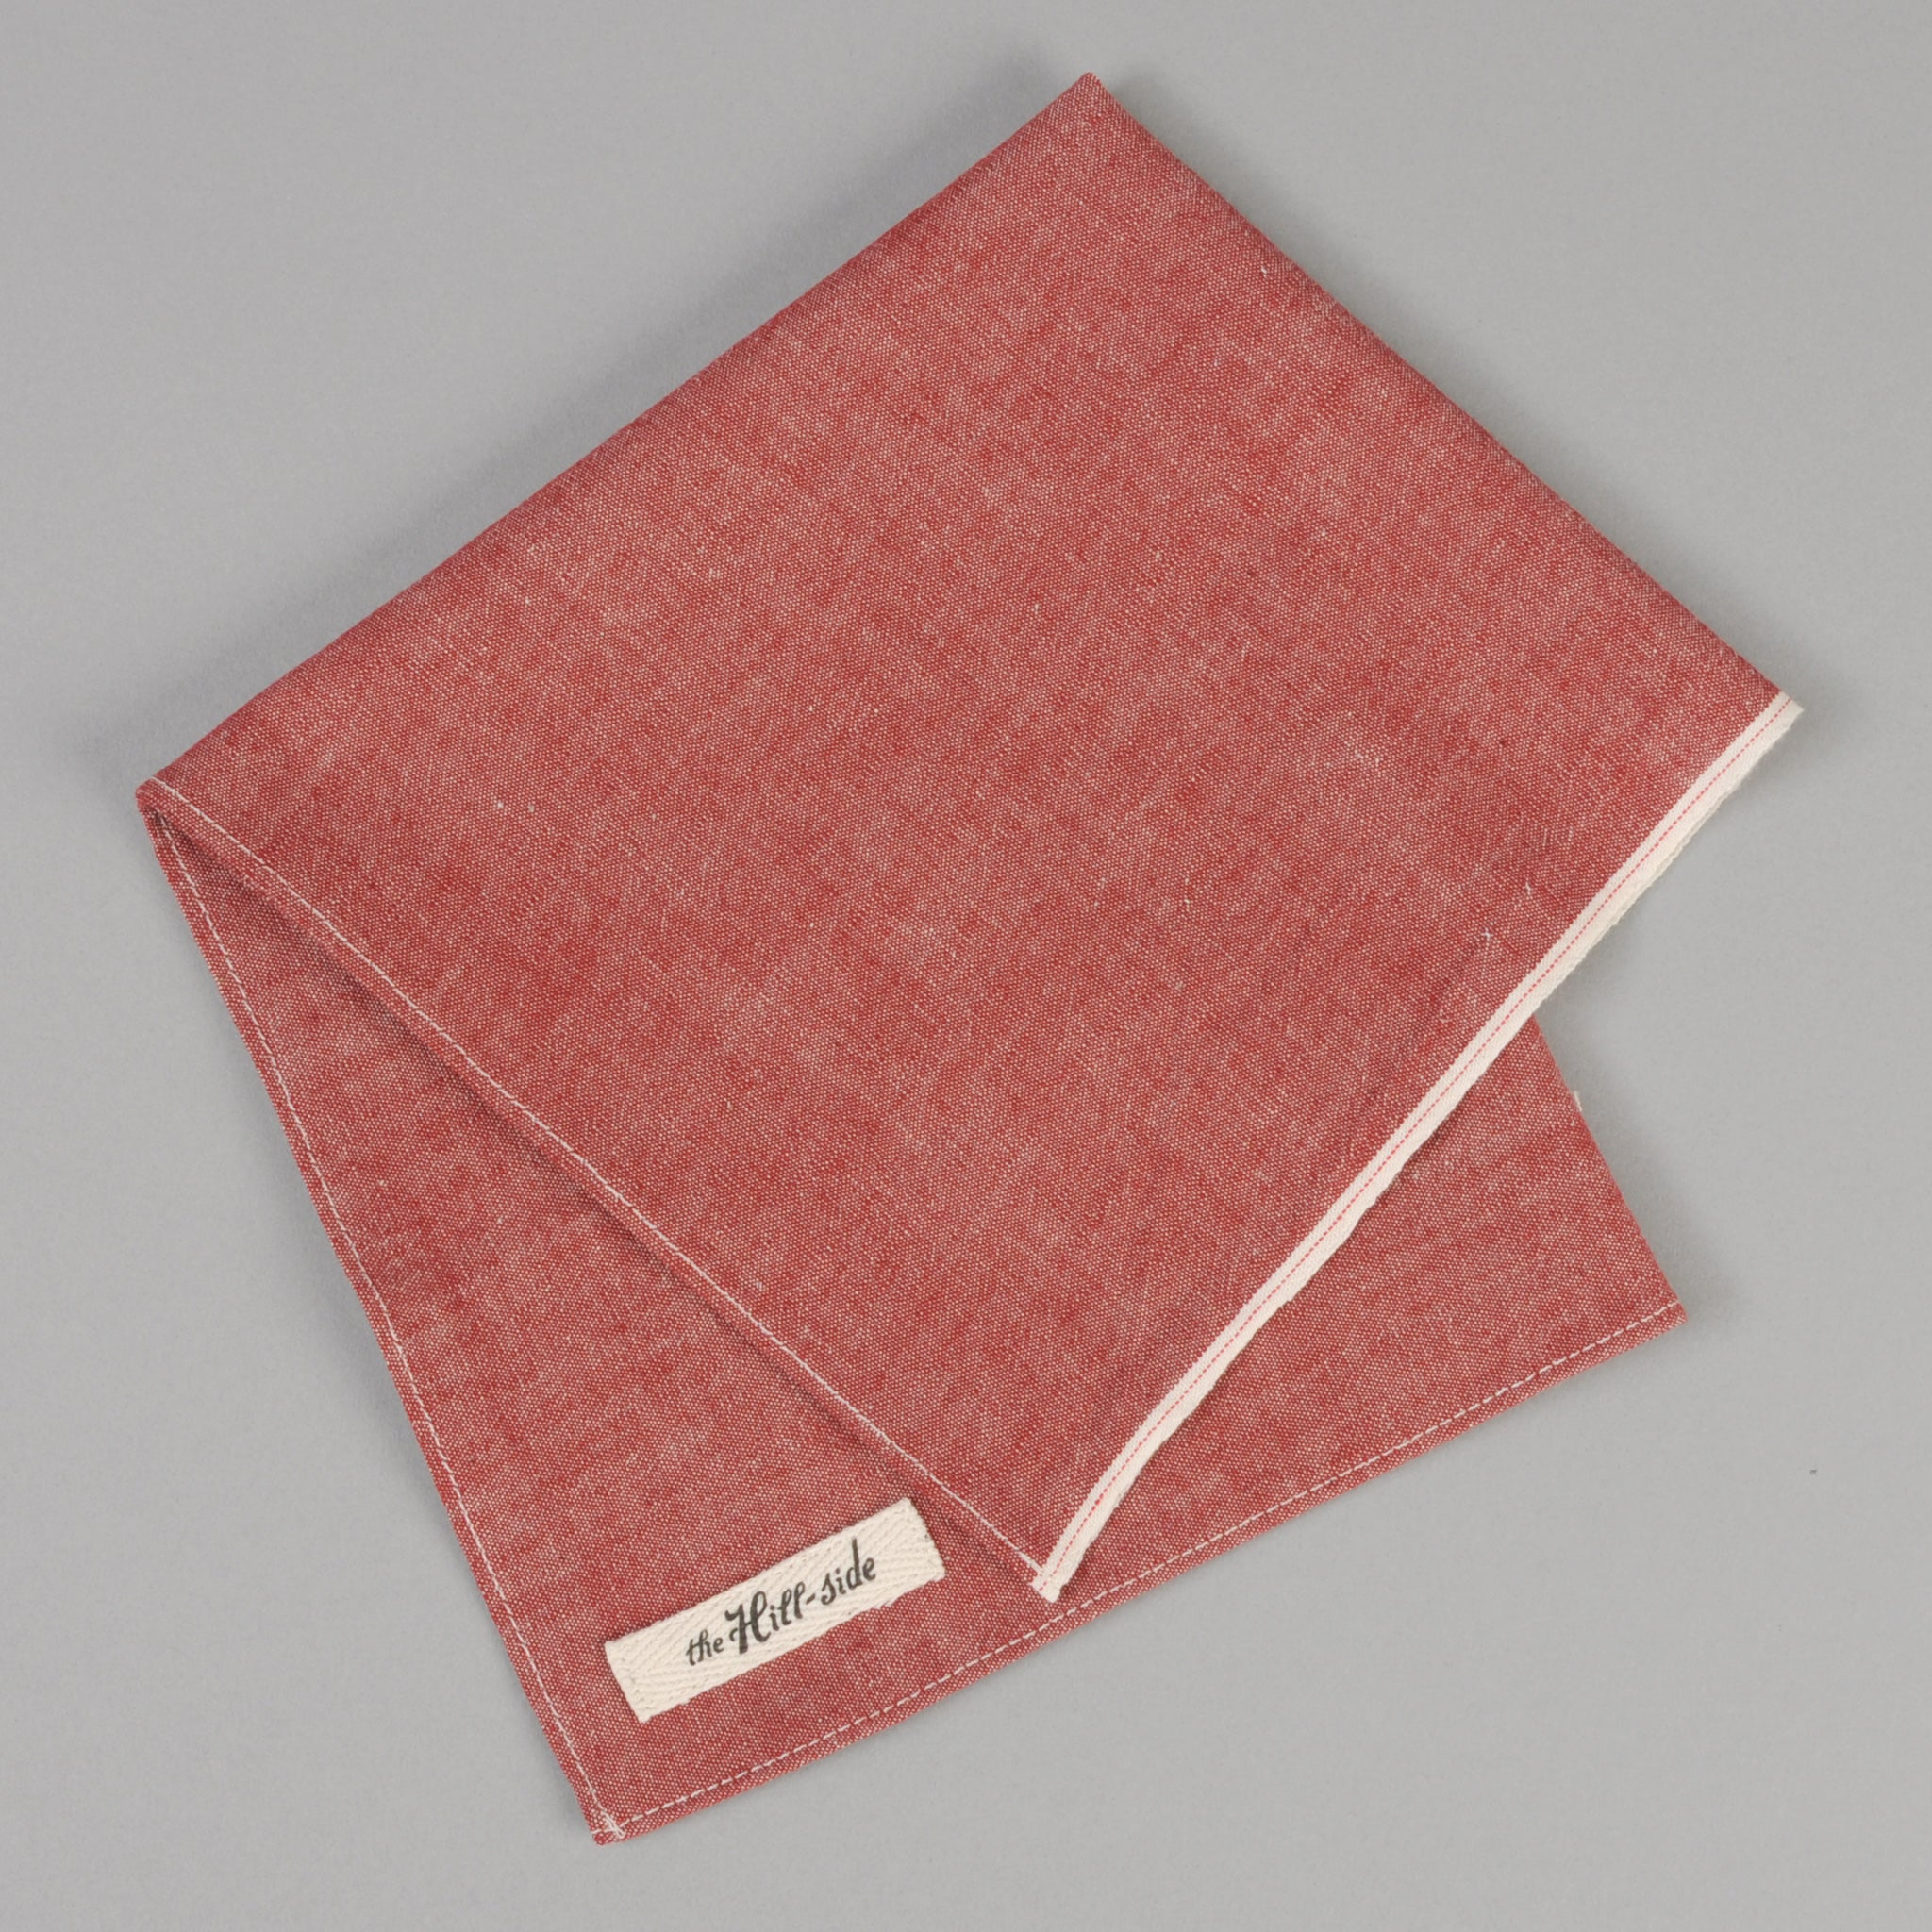 The Hill-Side - Red Chambray Pocket Square - PS1-003 - image 1